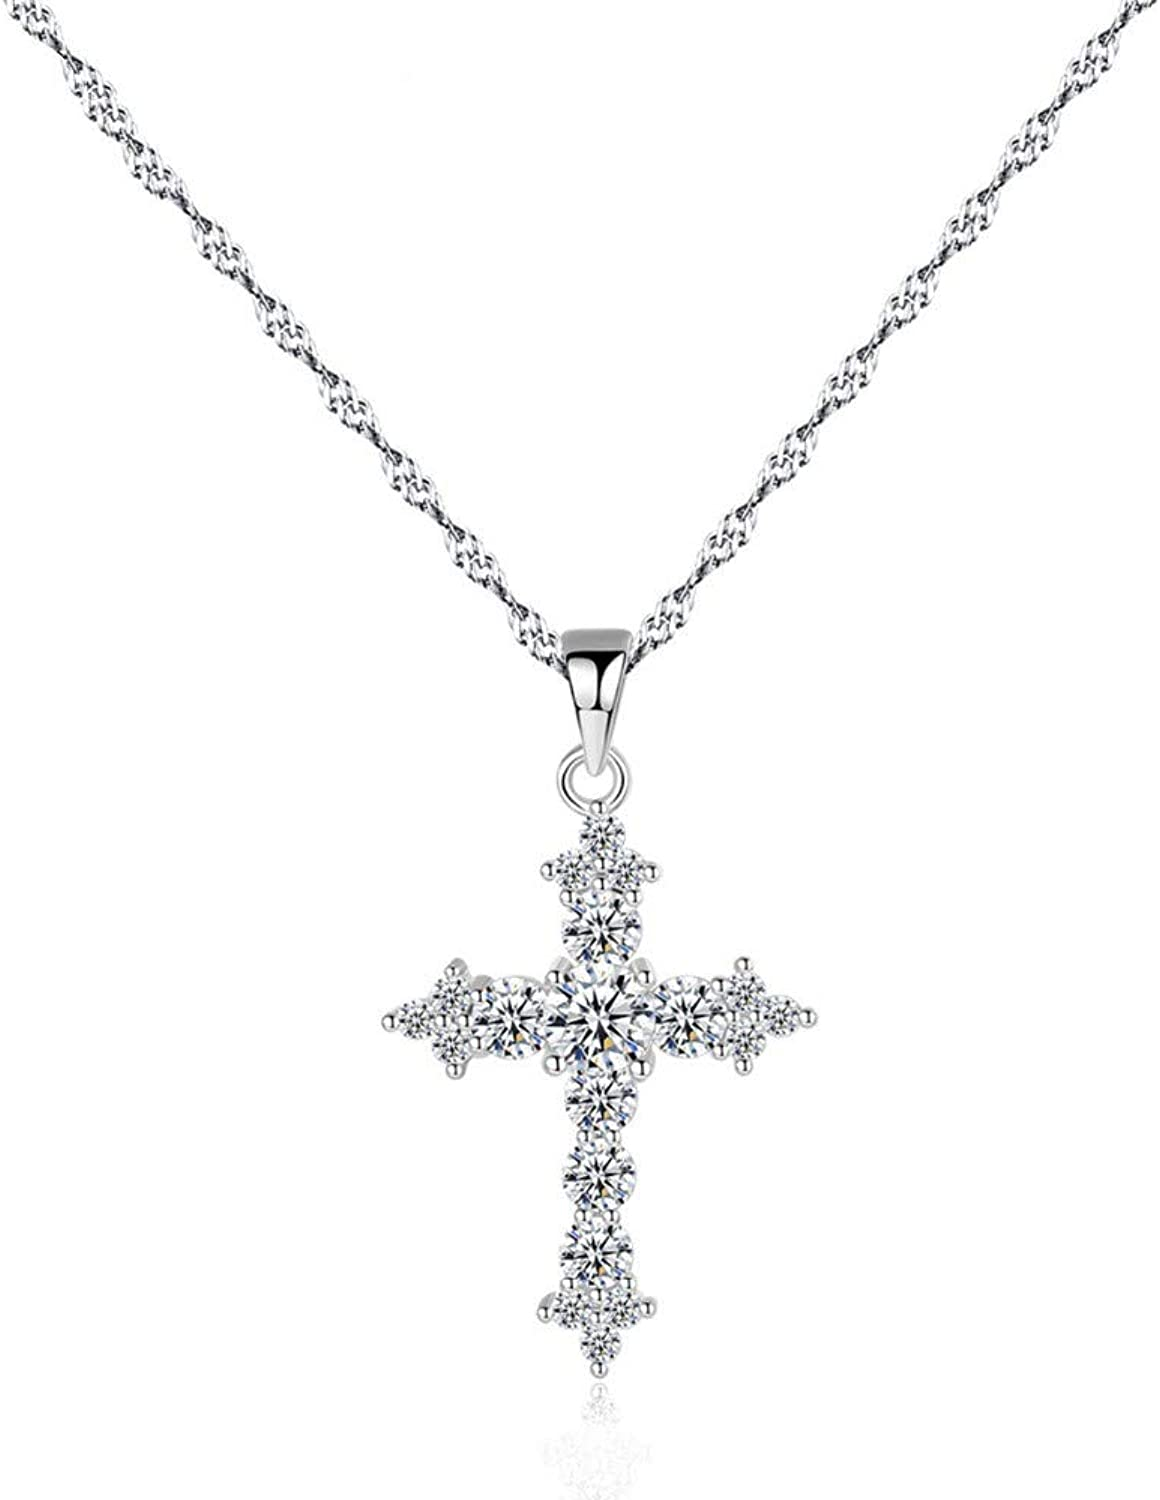 QMM necklace Pendant 925 Sterling Silver AAA+ Cubic Zircon Brilliant Cross Pendant Necklace Exquisite Twisted Chain Necklace Sterling Jewelry